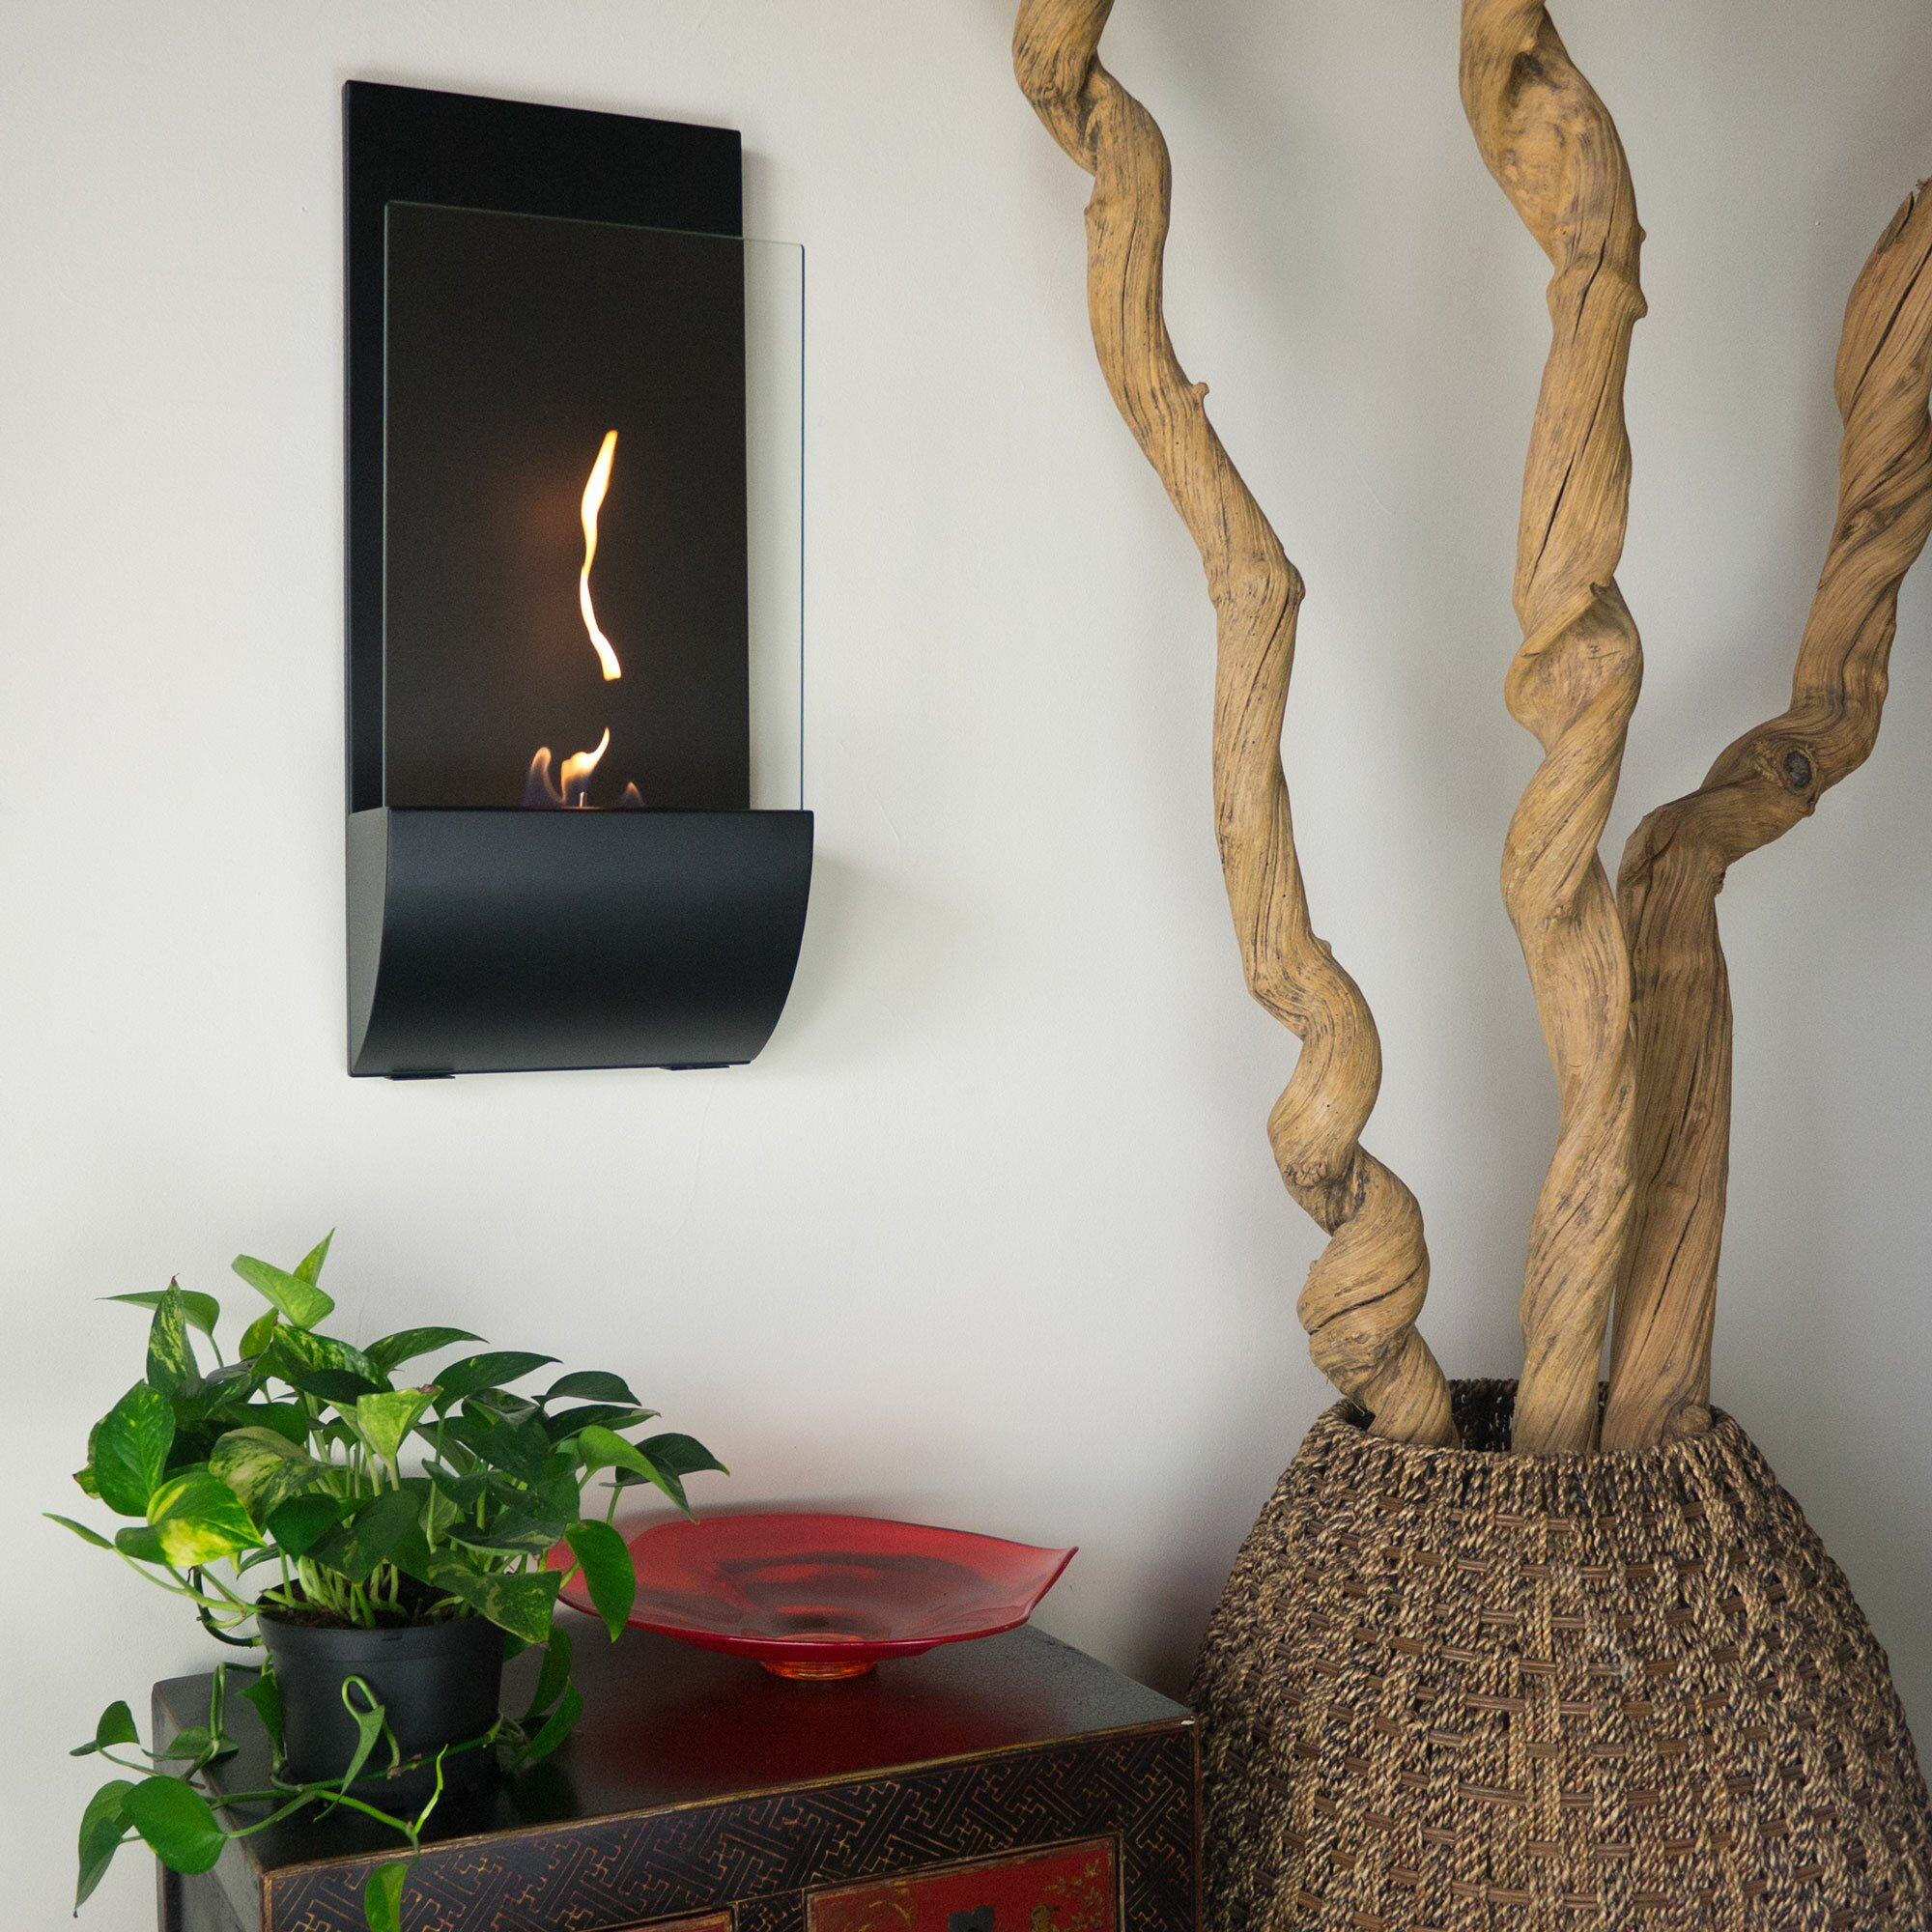 Natural gas wall mount fireplaces - Torcia Wall Mount Bio Ethanol Fireplace